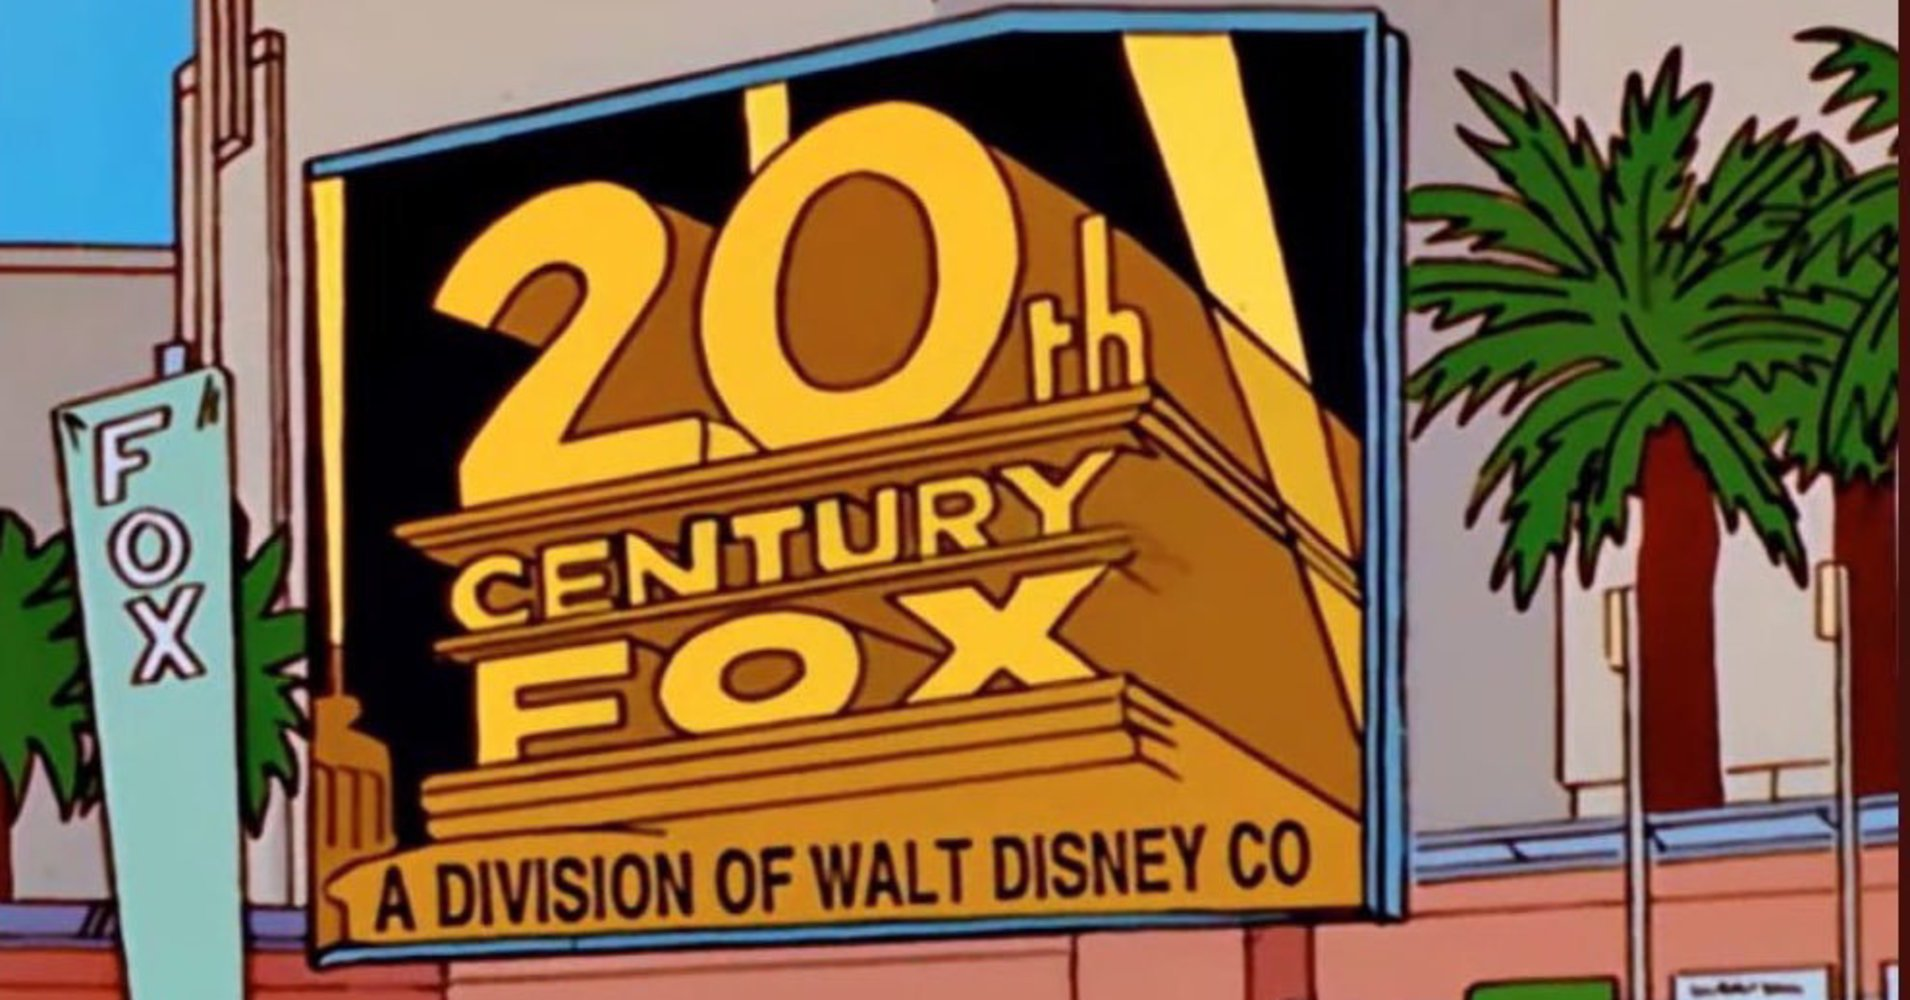 'The Simpsons' predicted Disney would buy Fox nearly 20 years ago https://t.co/hH3oAWPhb8 https://t.co/tCzIk1XQSC